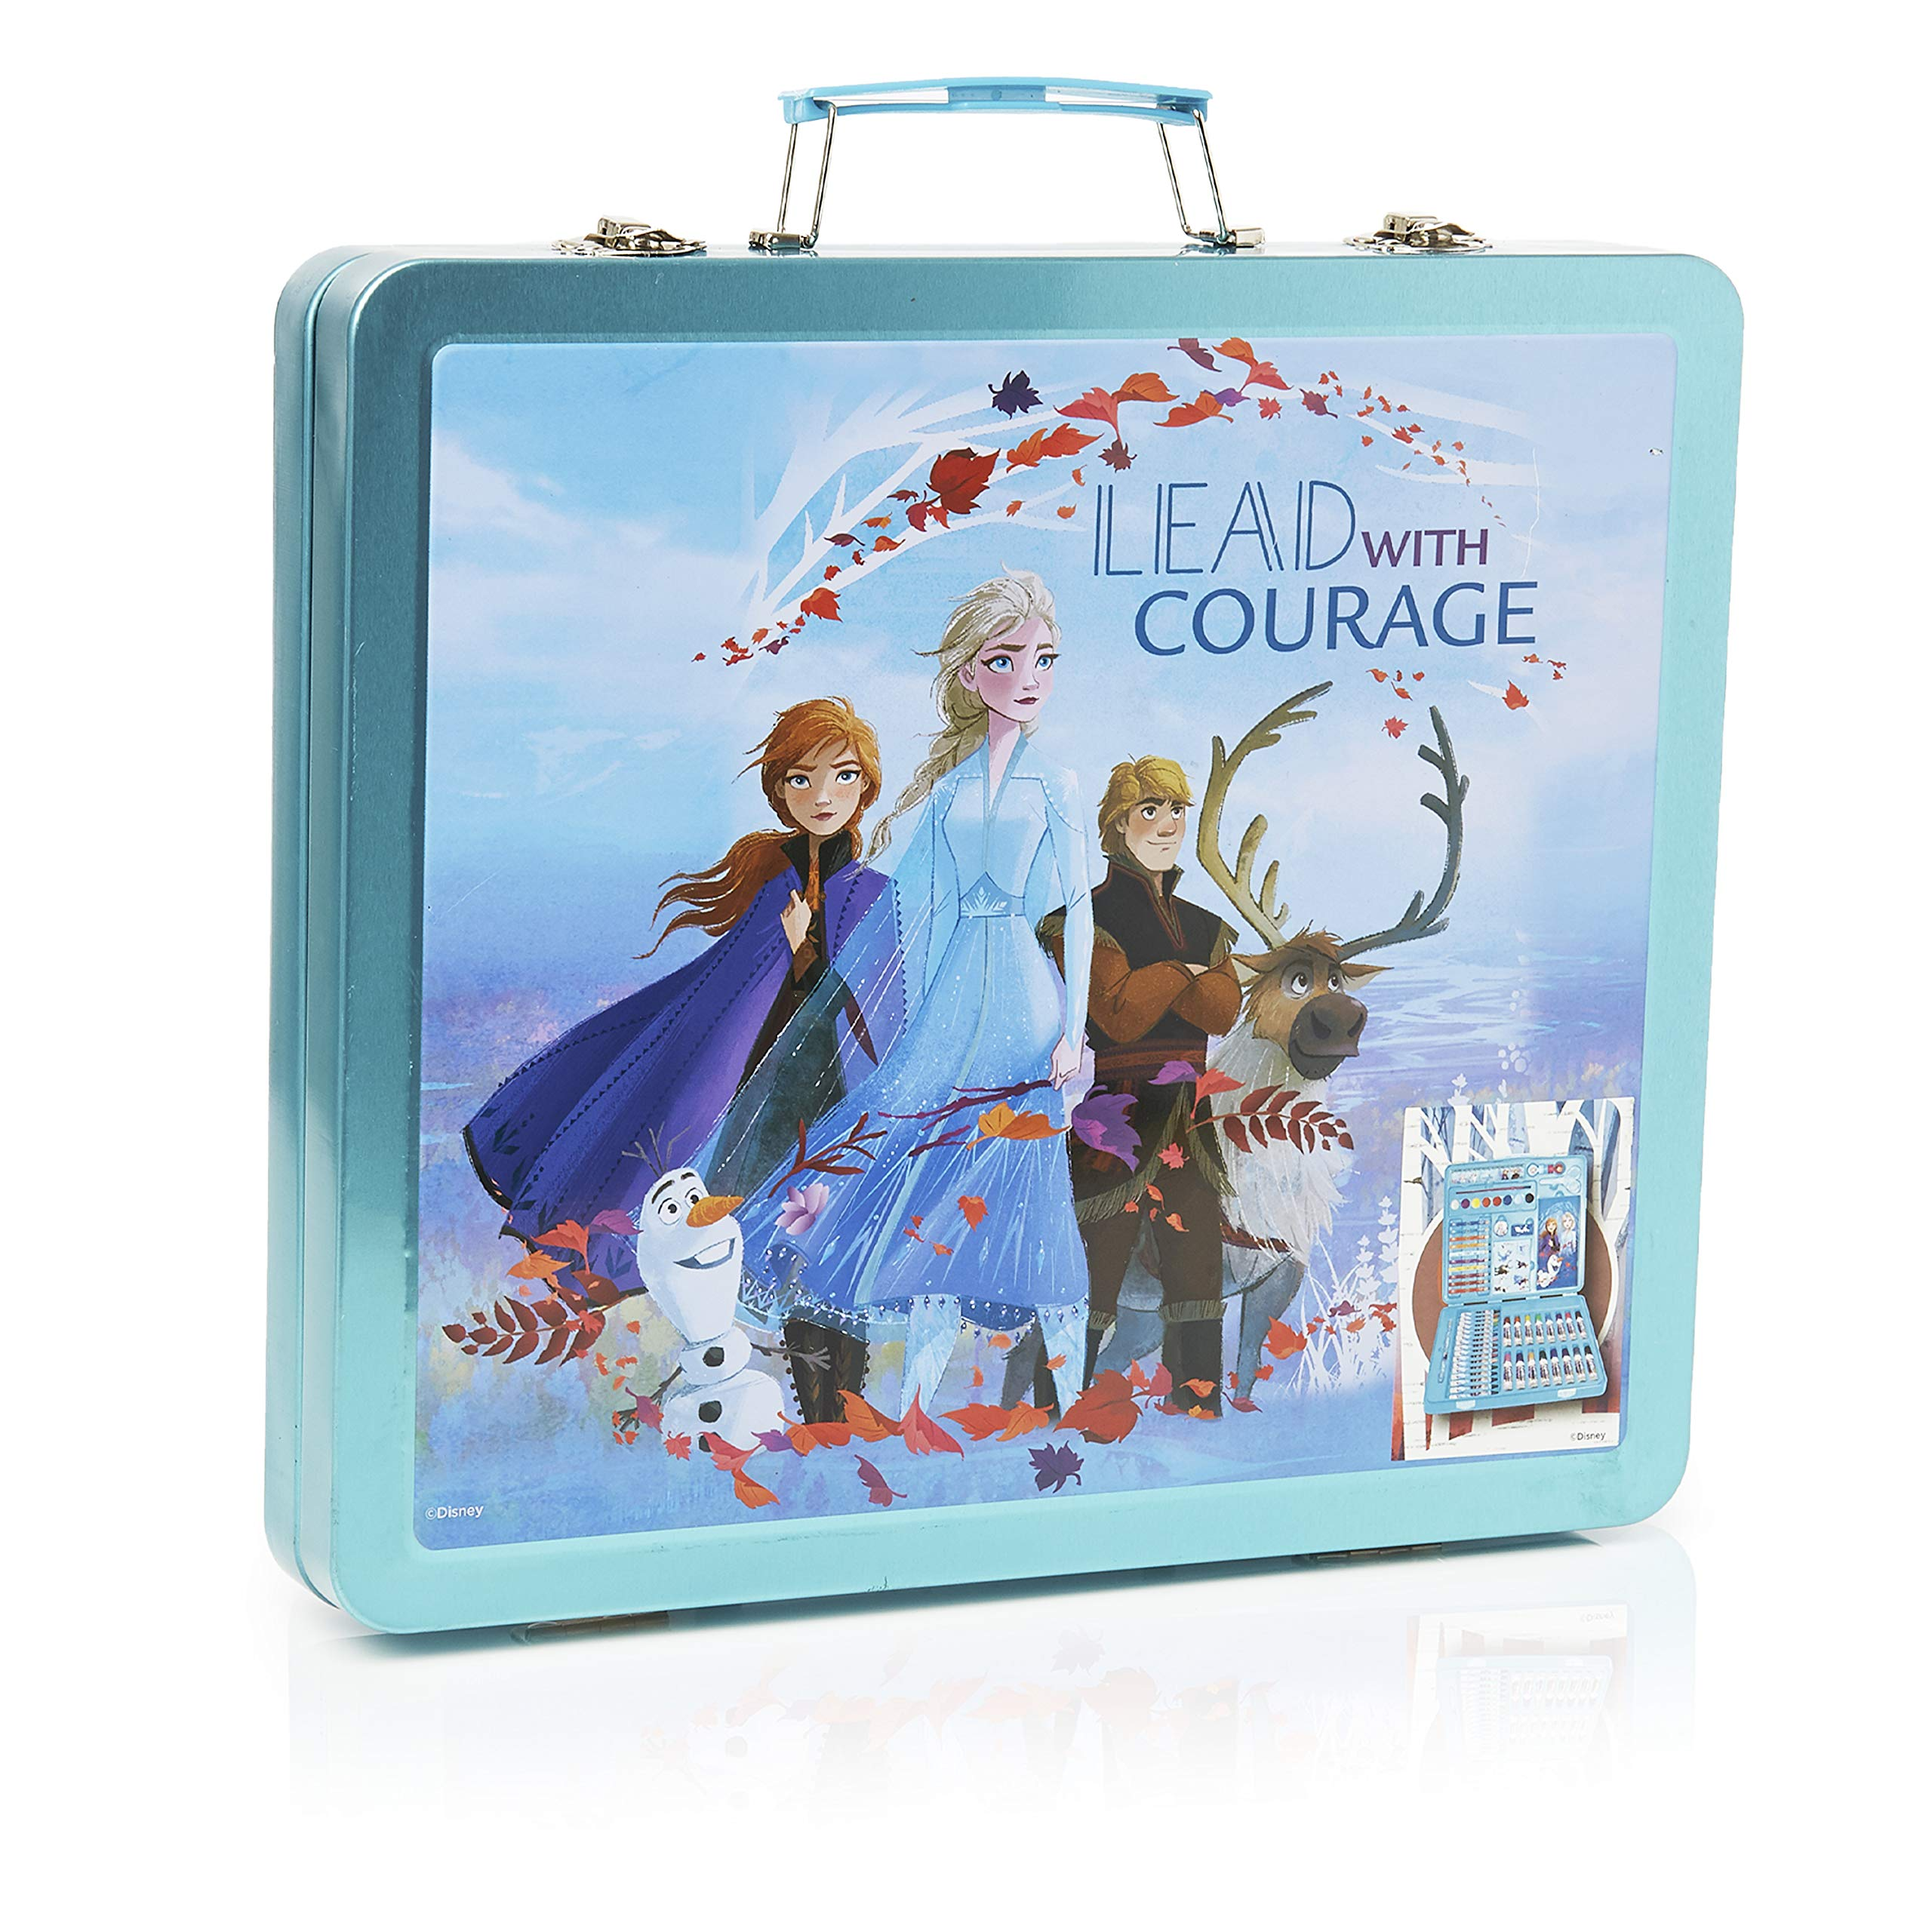 Disney Frozen Colouring Set for Girls, Painting and Drawing Art Set for Kids